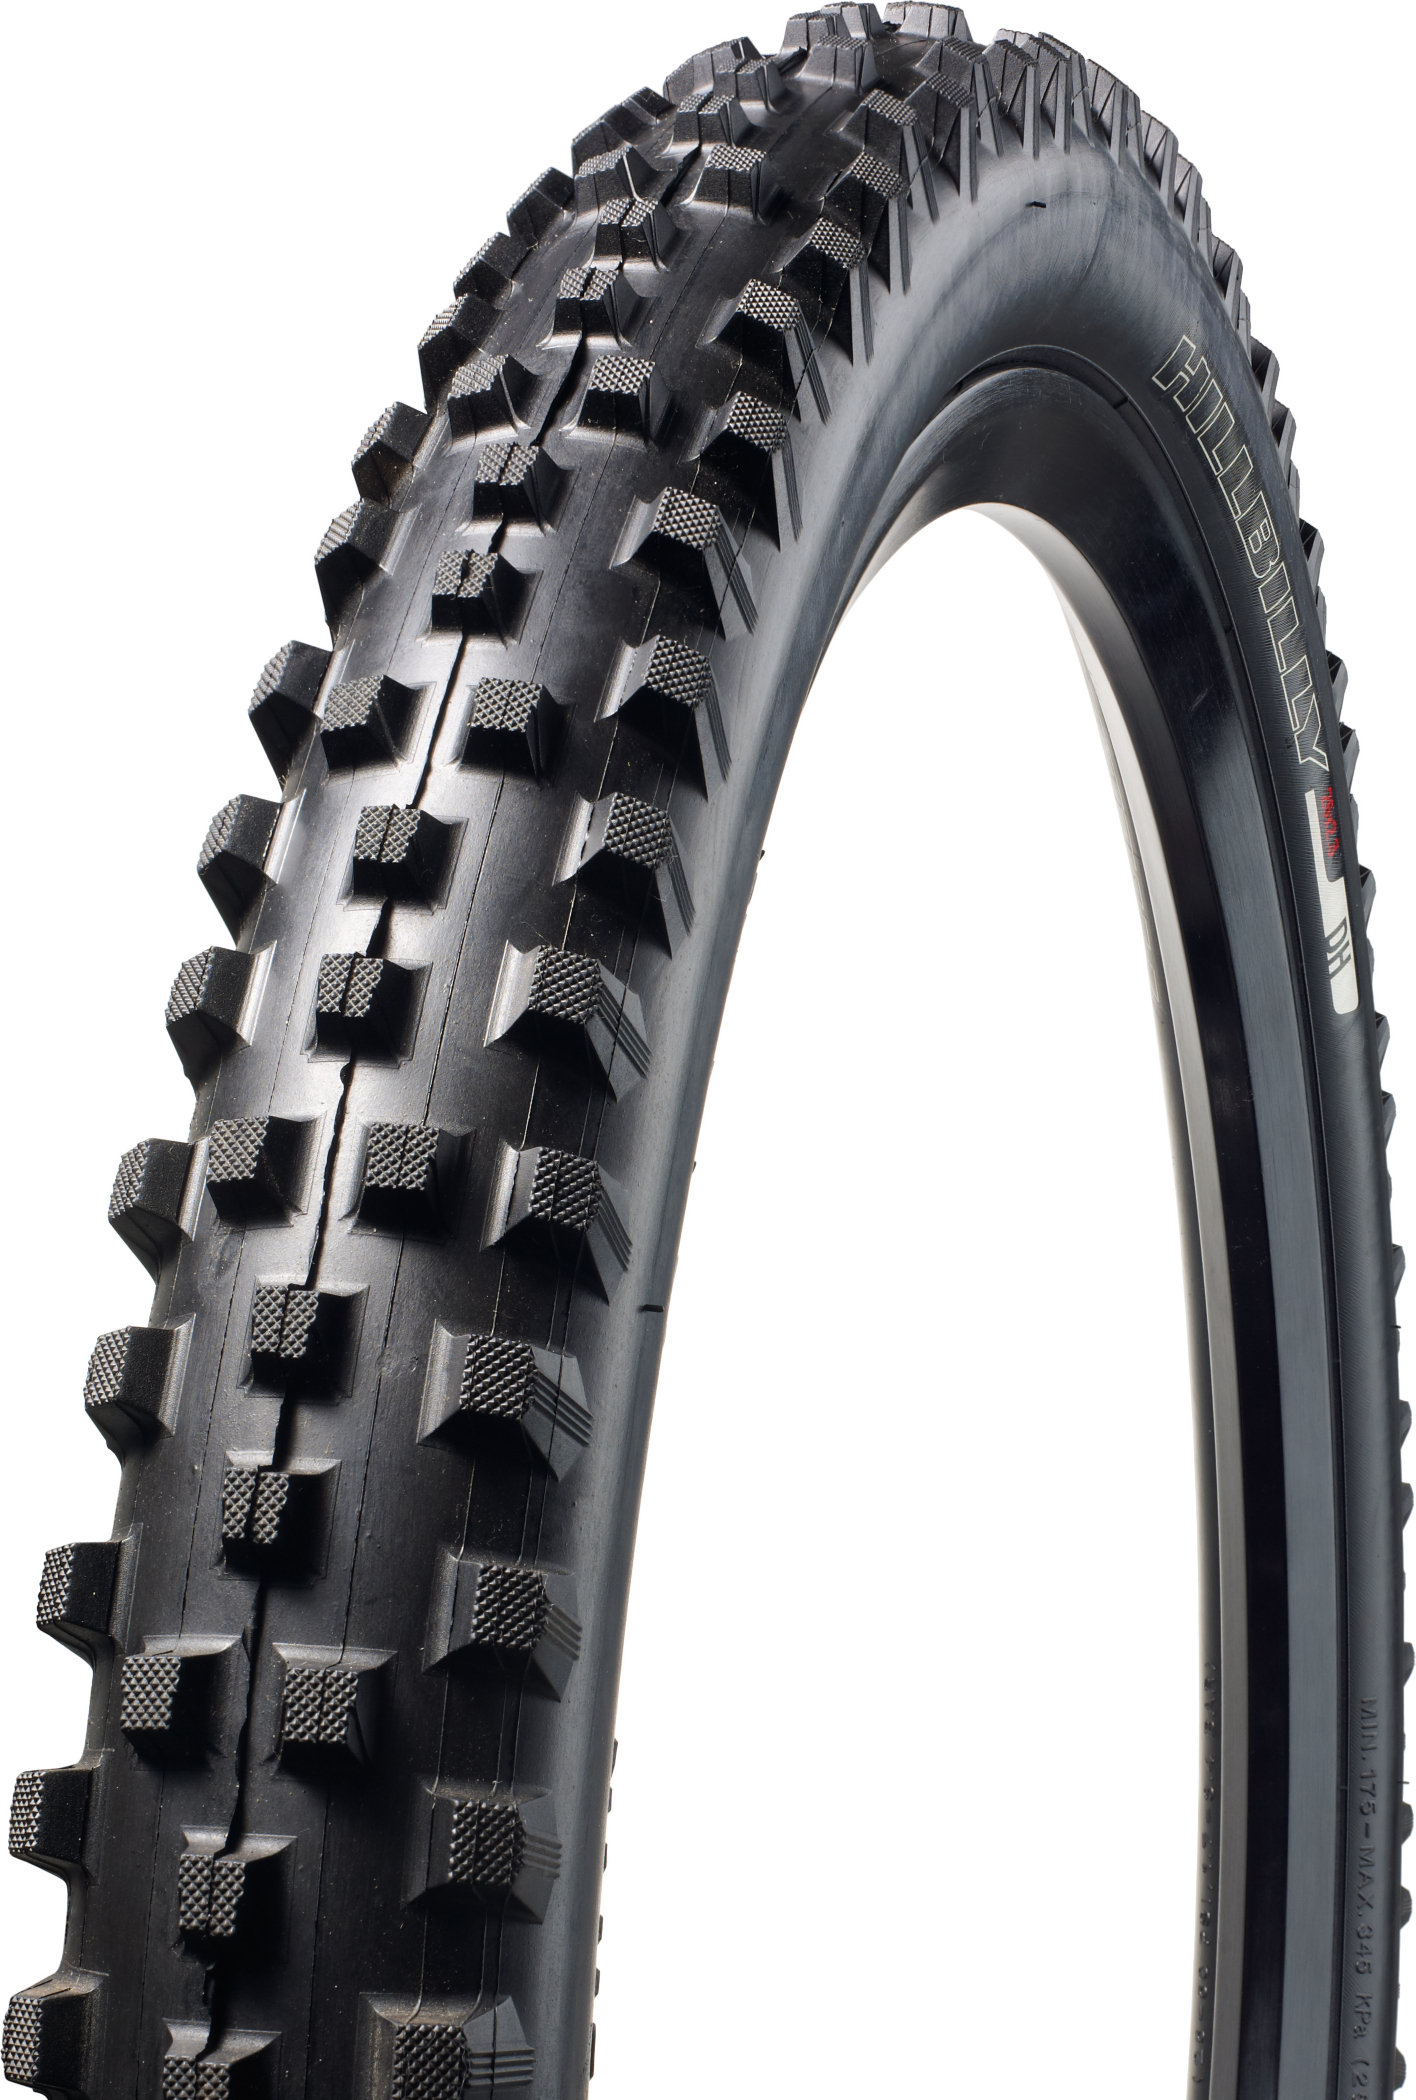 SPECIALIZED HILLBILLY DH TIRE BLK 26X2.3 - Alpha Bikes